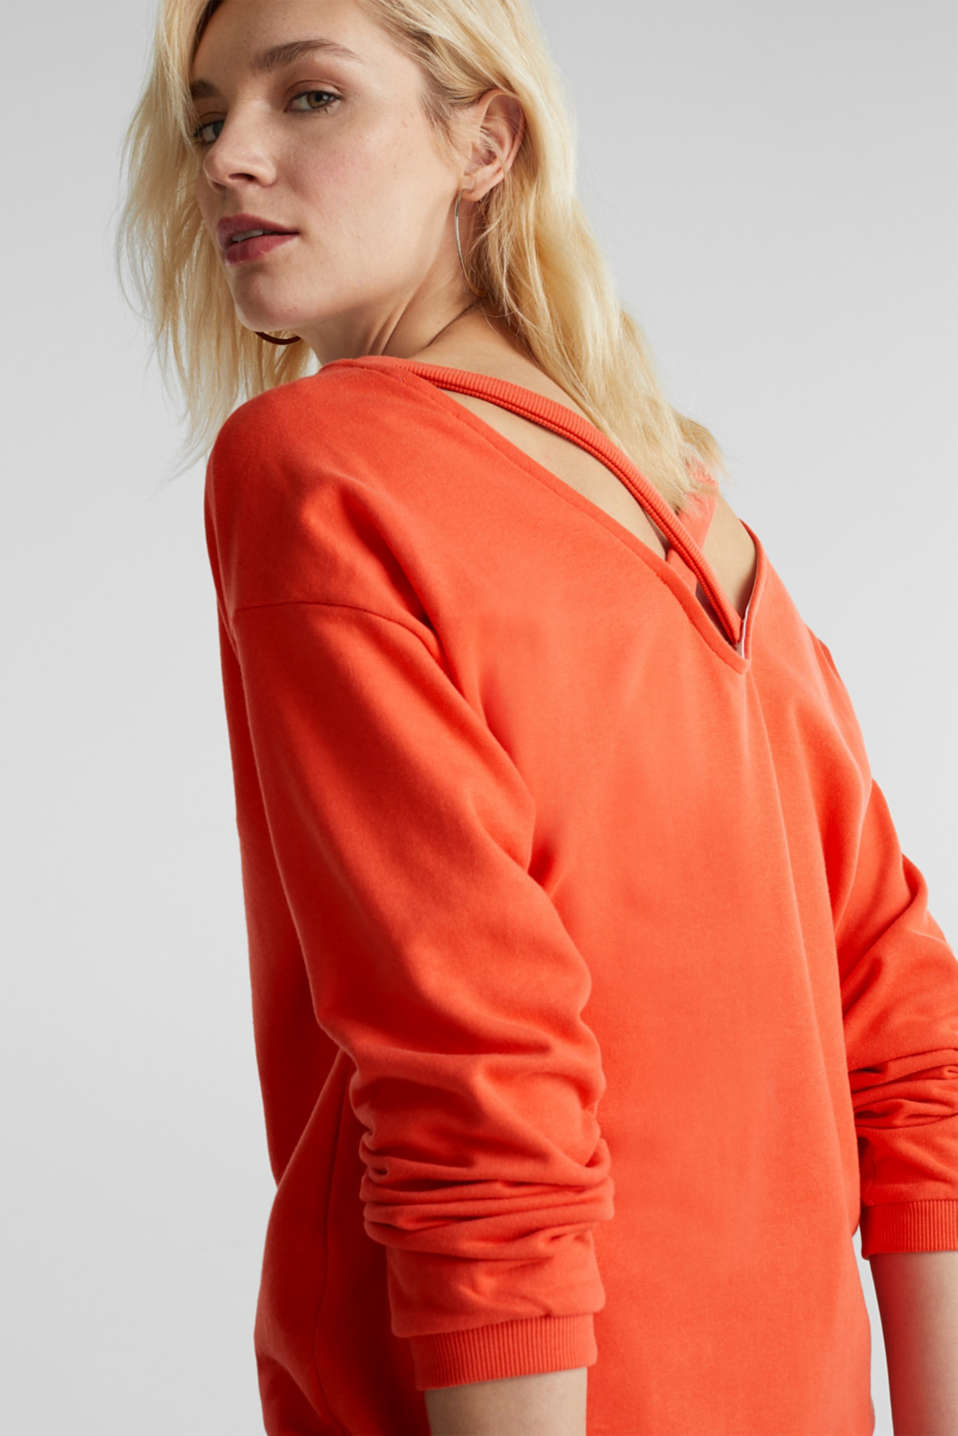 Sweatshirt with a back neckline, CORAL, detail image number 4